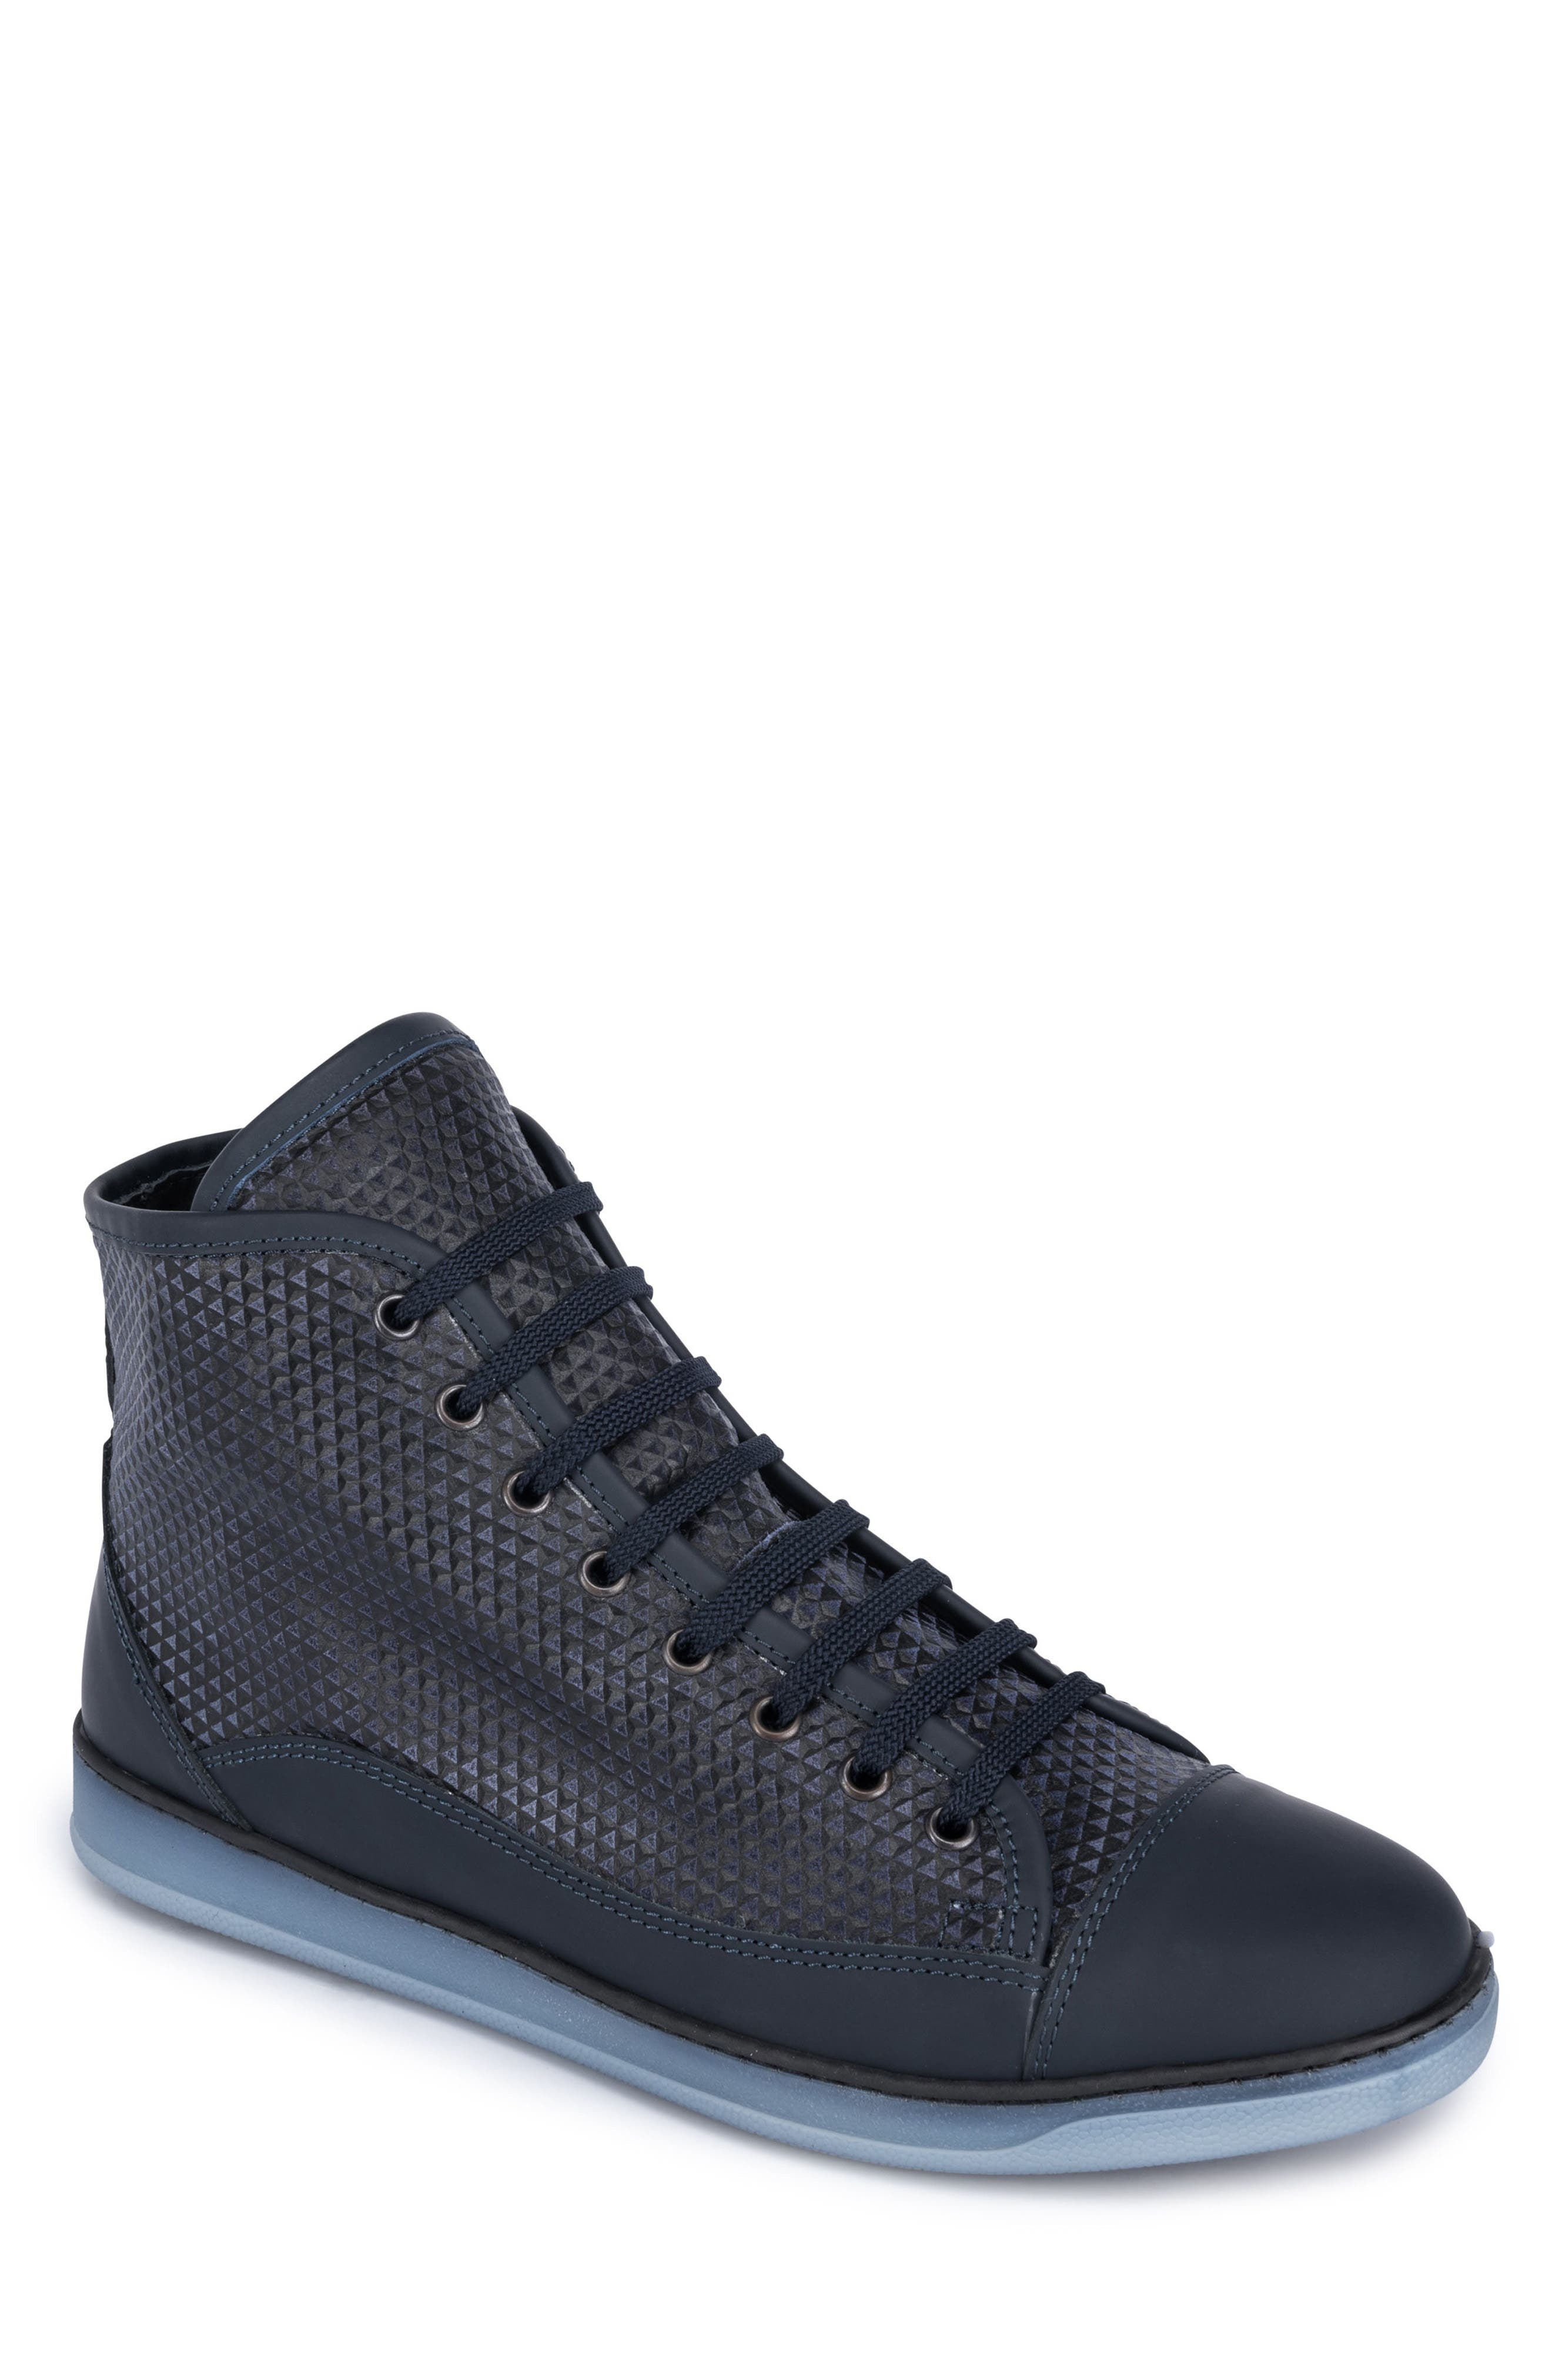 Treviso Sneaker,                         Main,                         color, Indaco